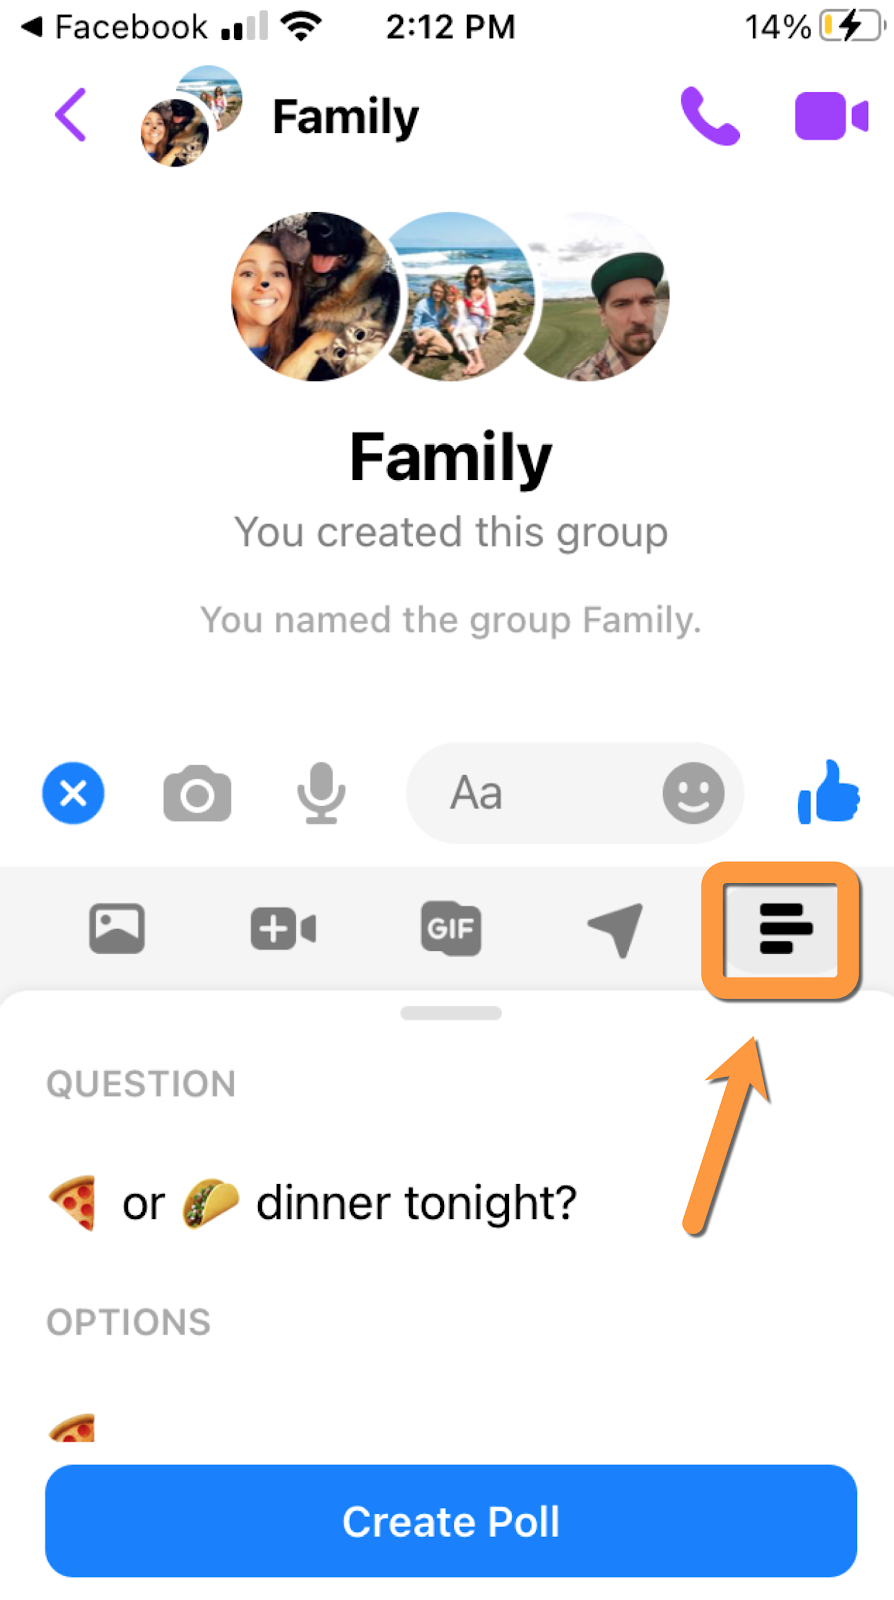 facebook group chat poll example step 2